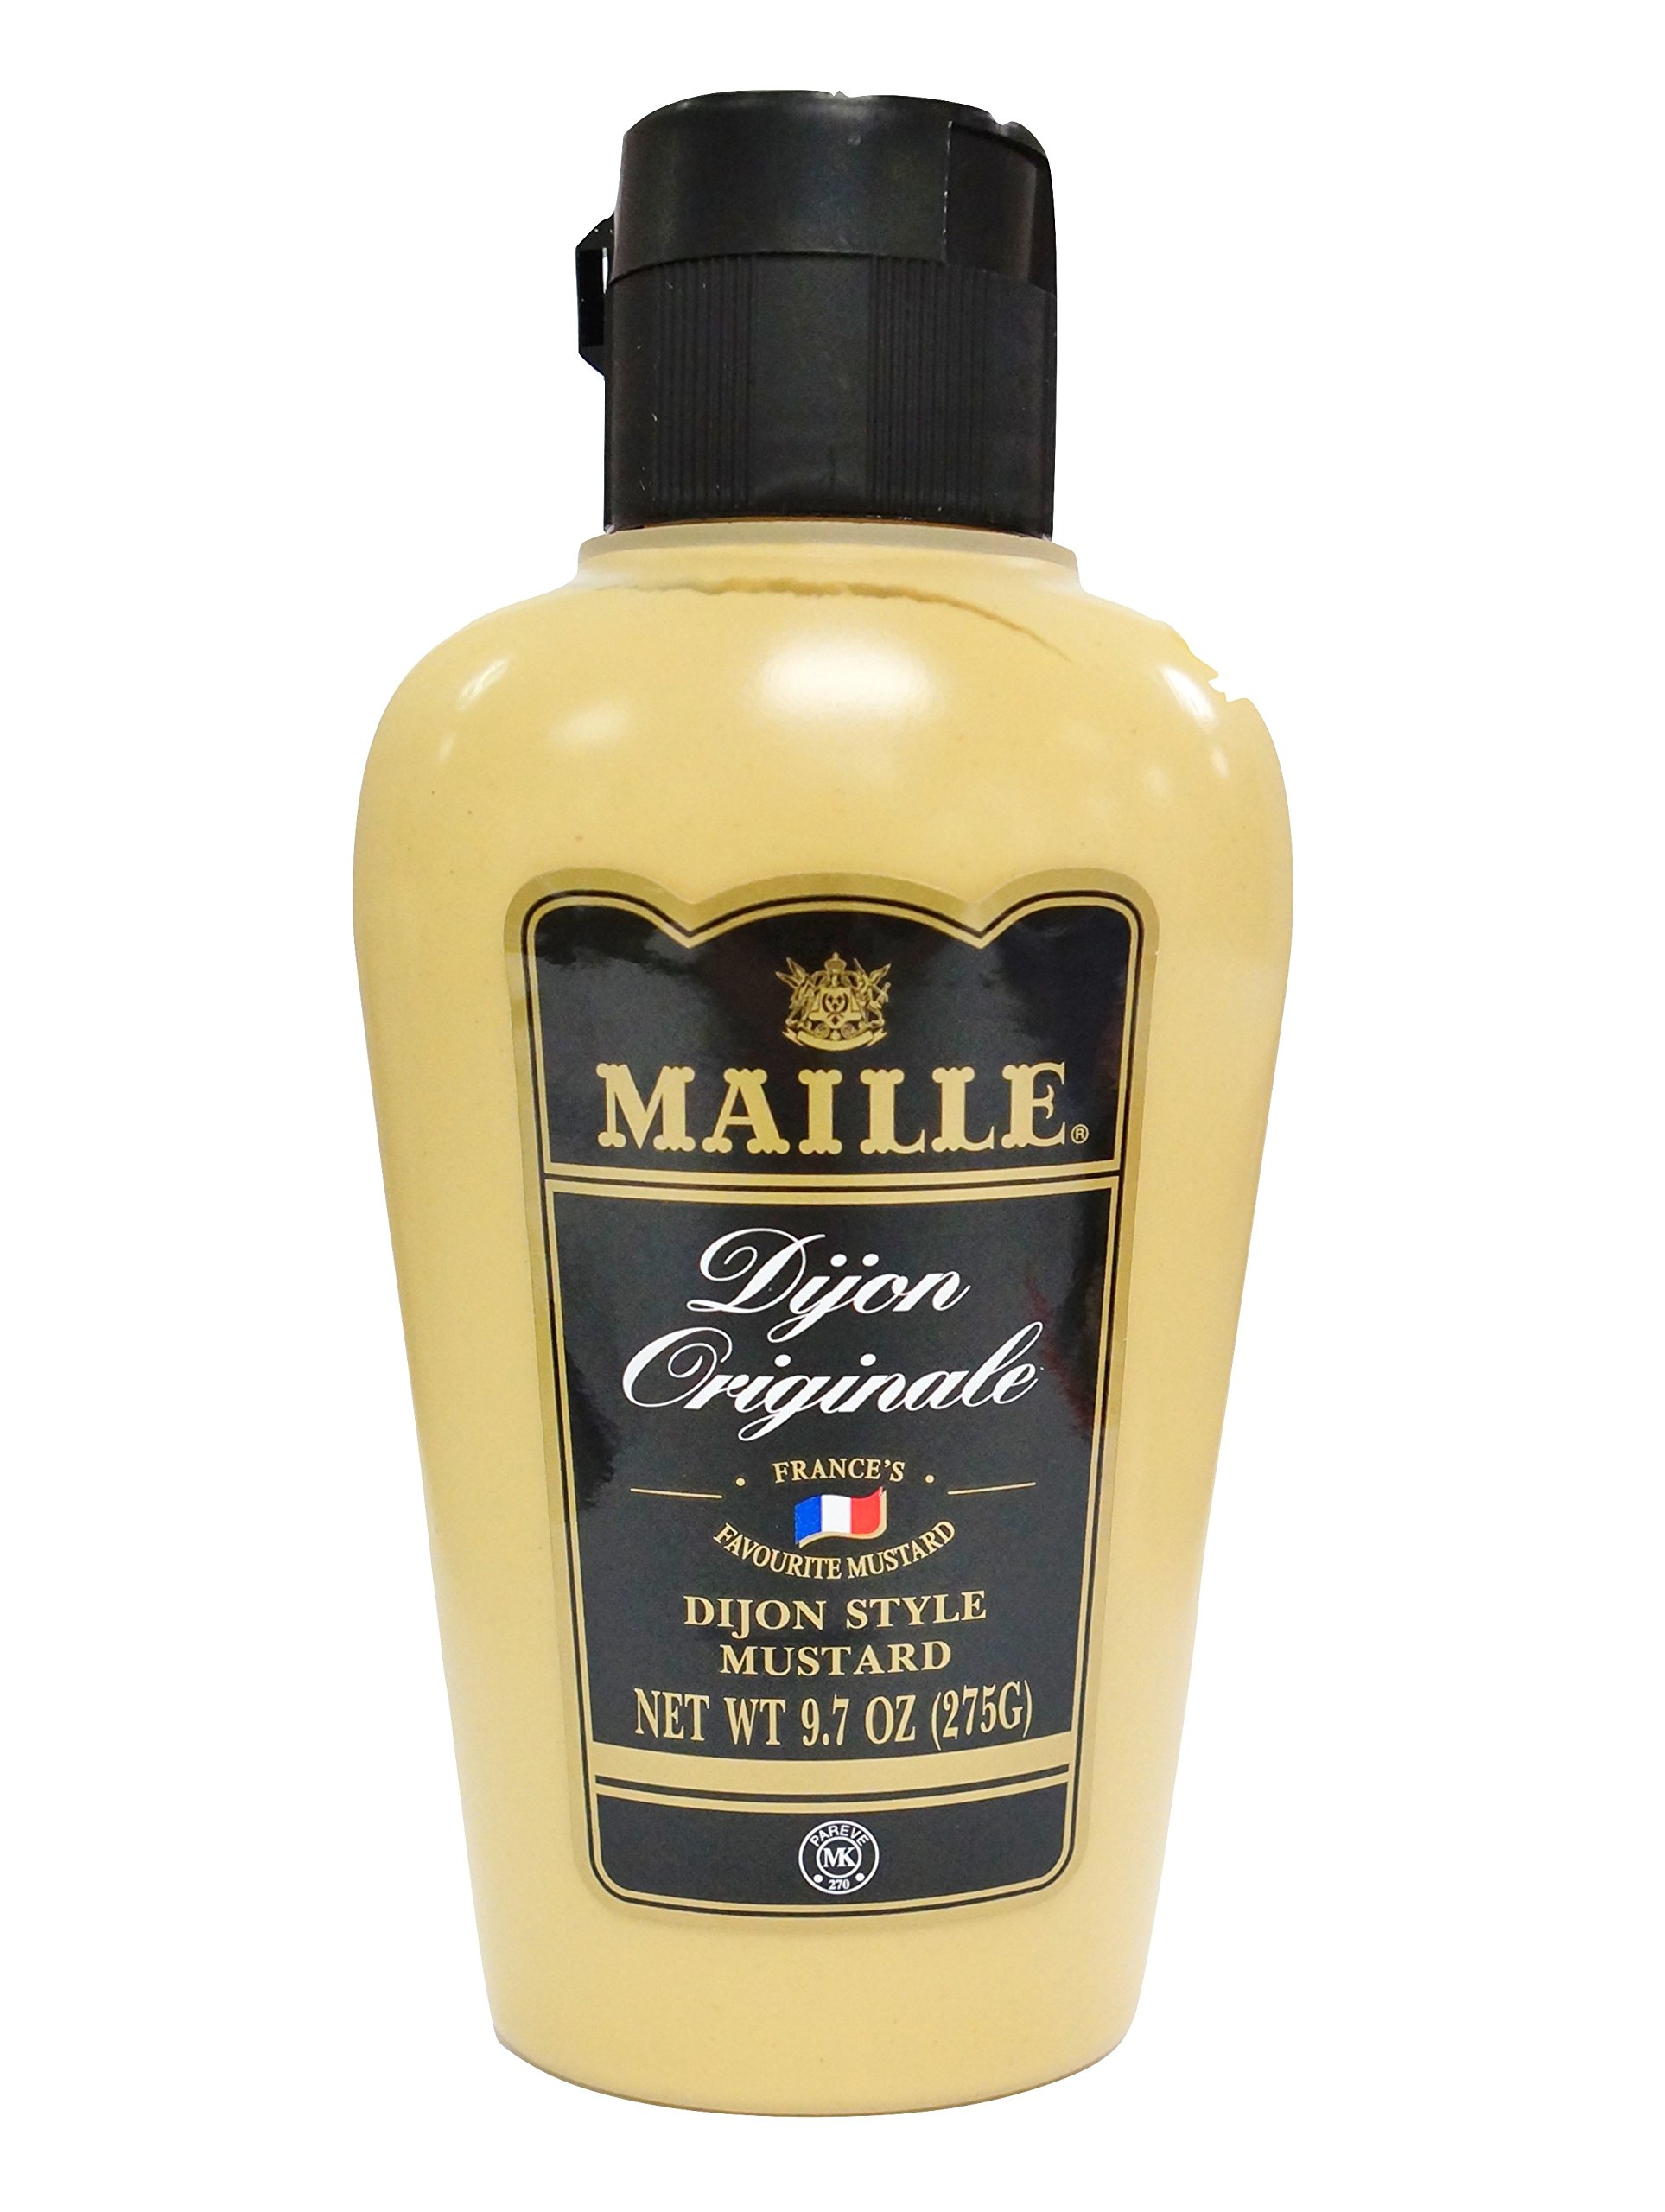 Maille Traditional Dijon Originale Mustard, 9.7-Ounce Bottles (Pack of 12)